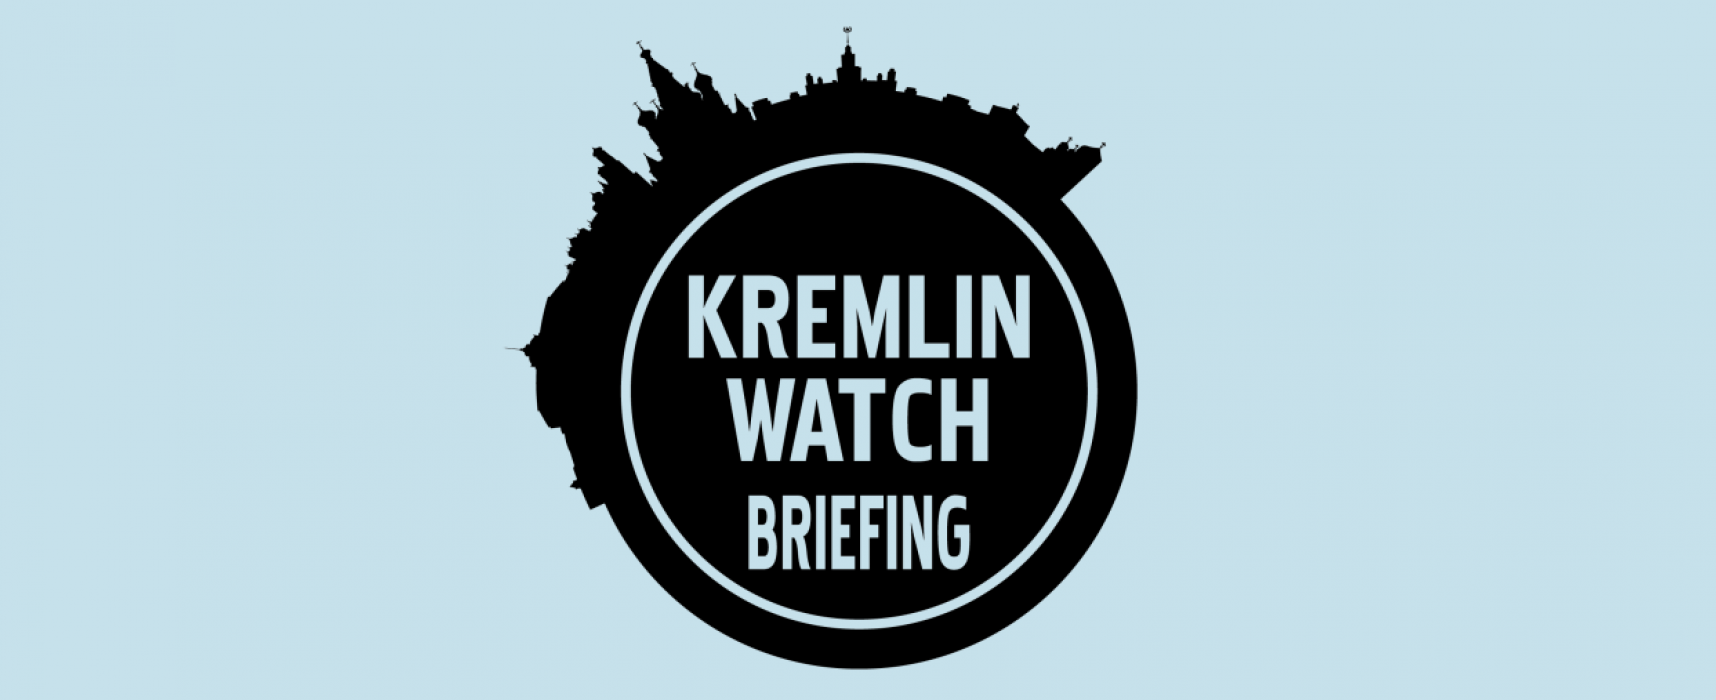 Kremlin Watch Briefing: Disinformation campaigns on COVID-19 in the V4